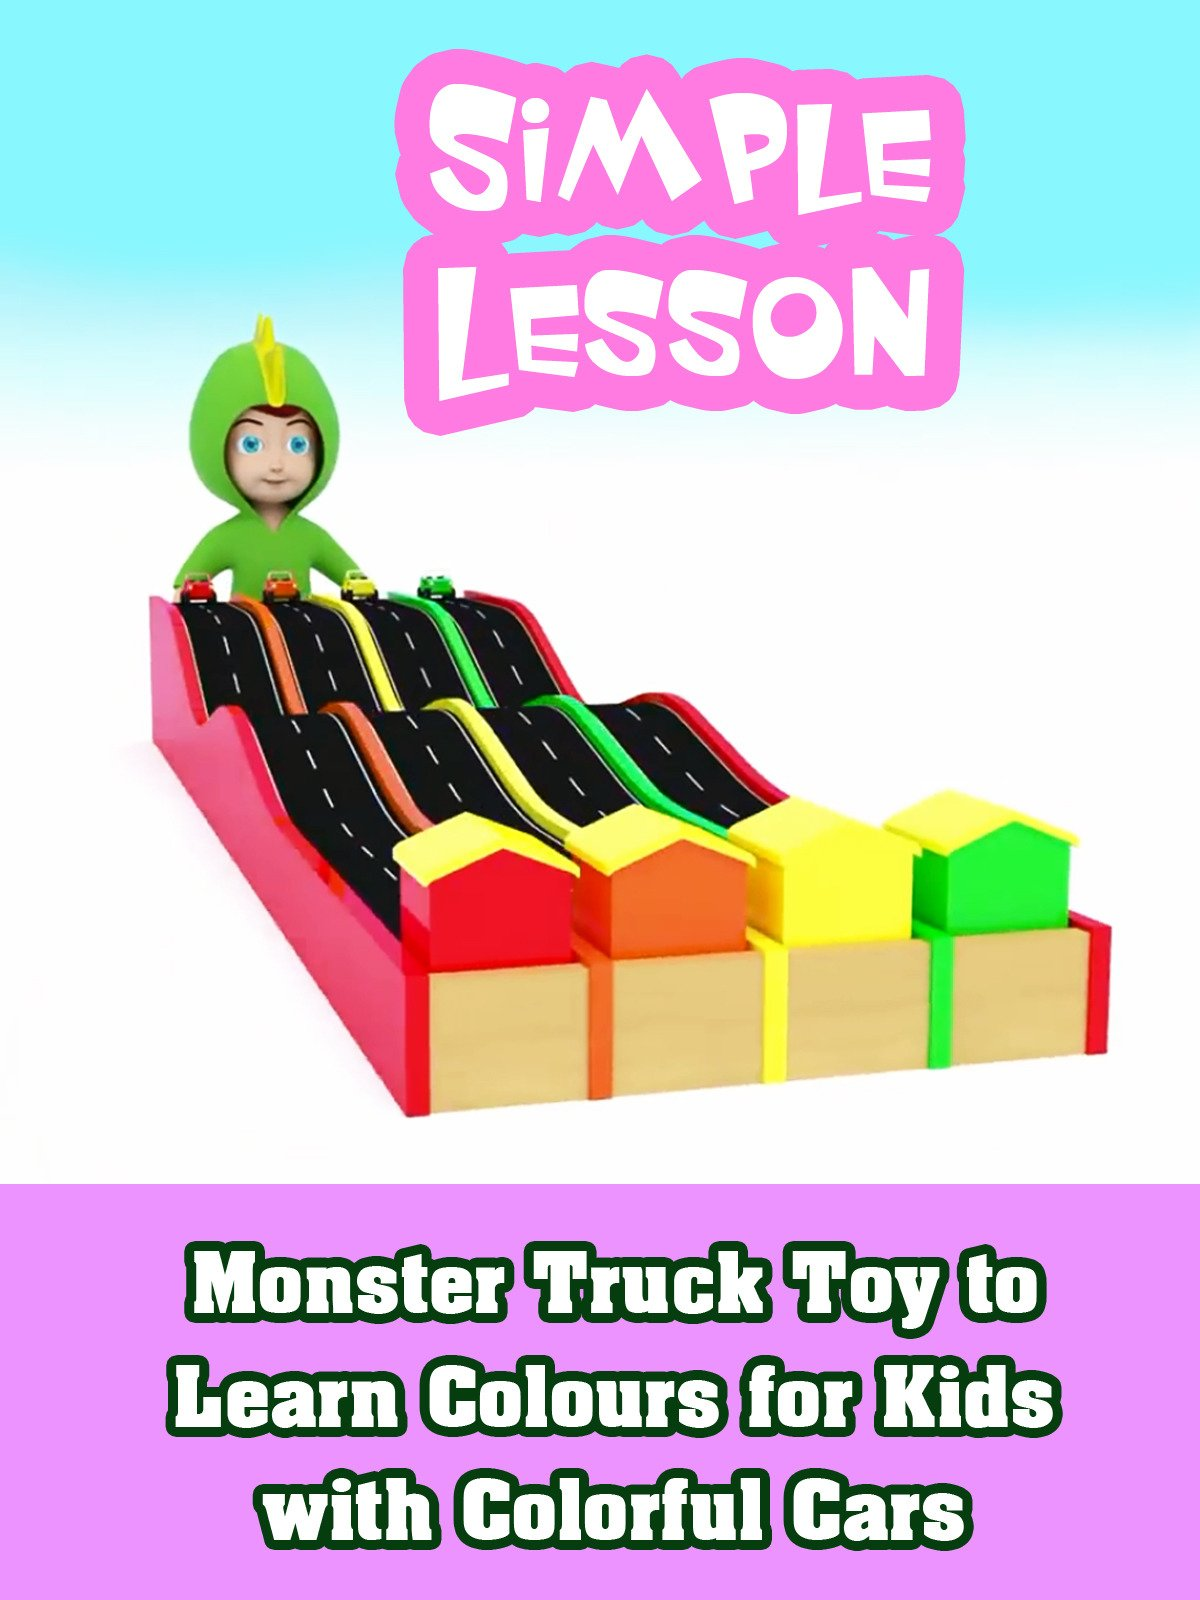 Monster Truck Toy to Learn Colours for Kids with Colorful Cars